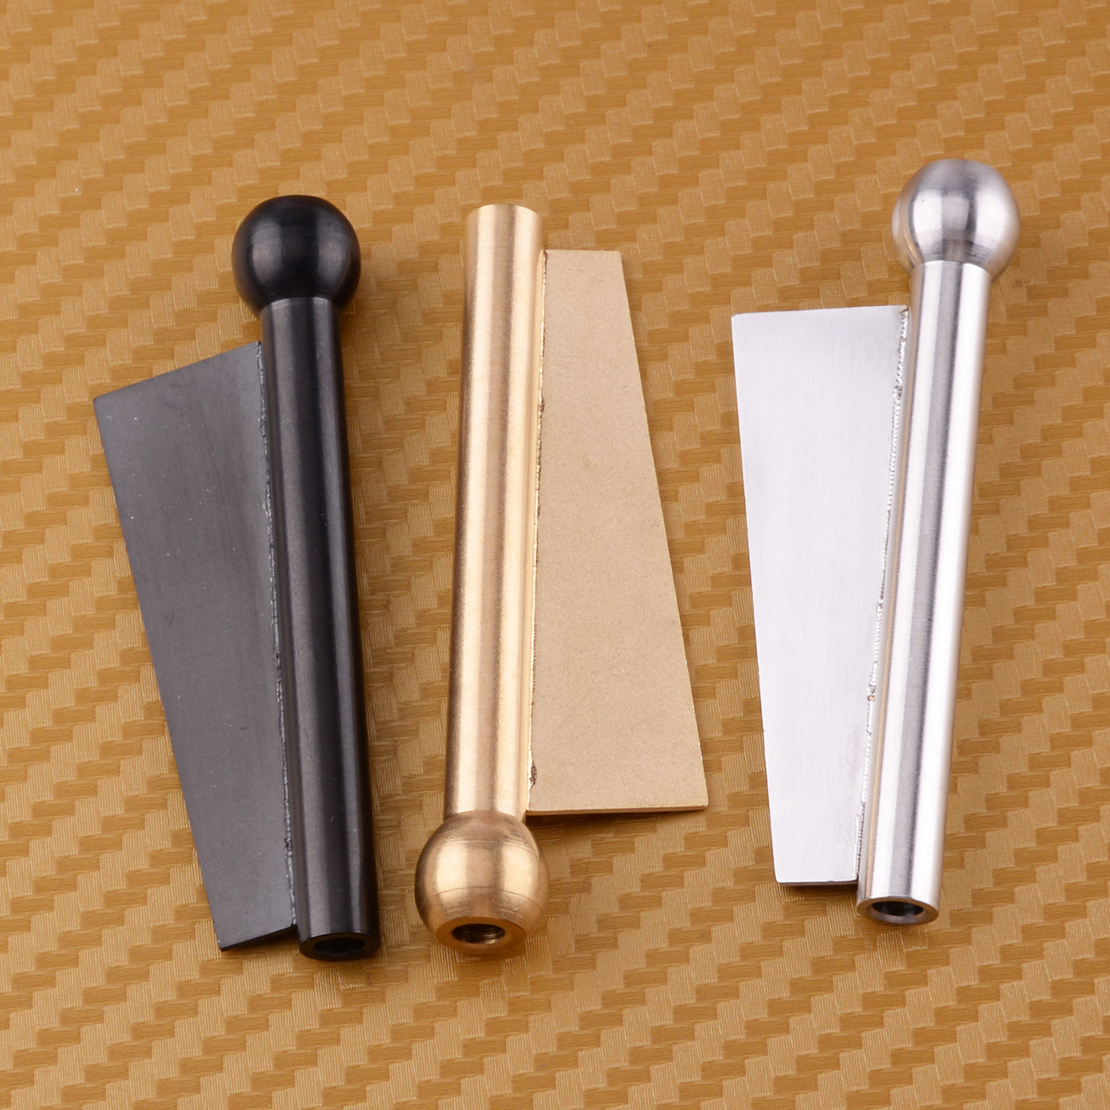 1pc Hot New Design Nasal Snuff Sniffer Straw Snorter Tube Snorter Snuffer  with Blade Edge